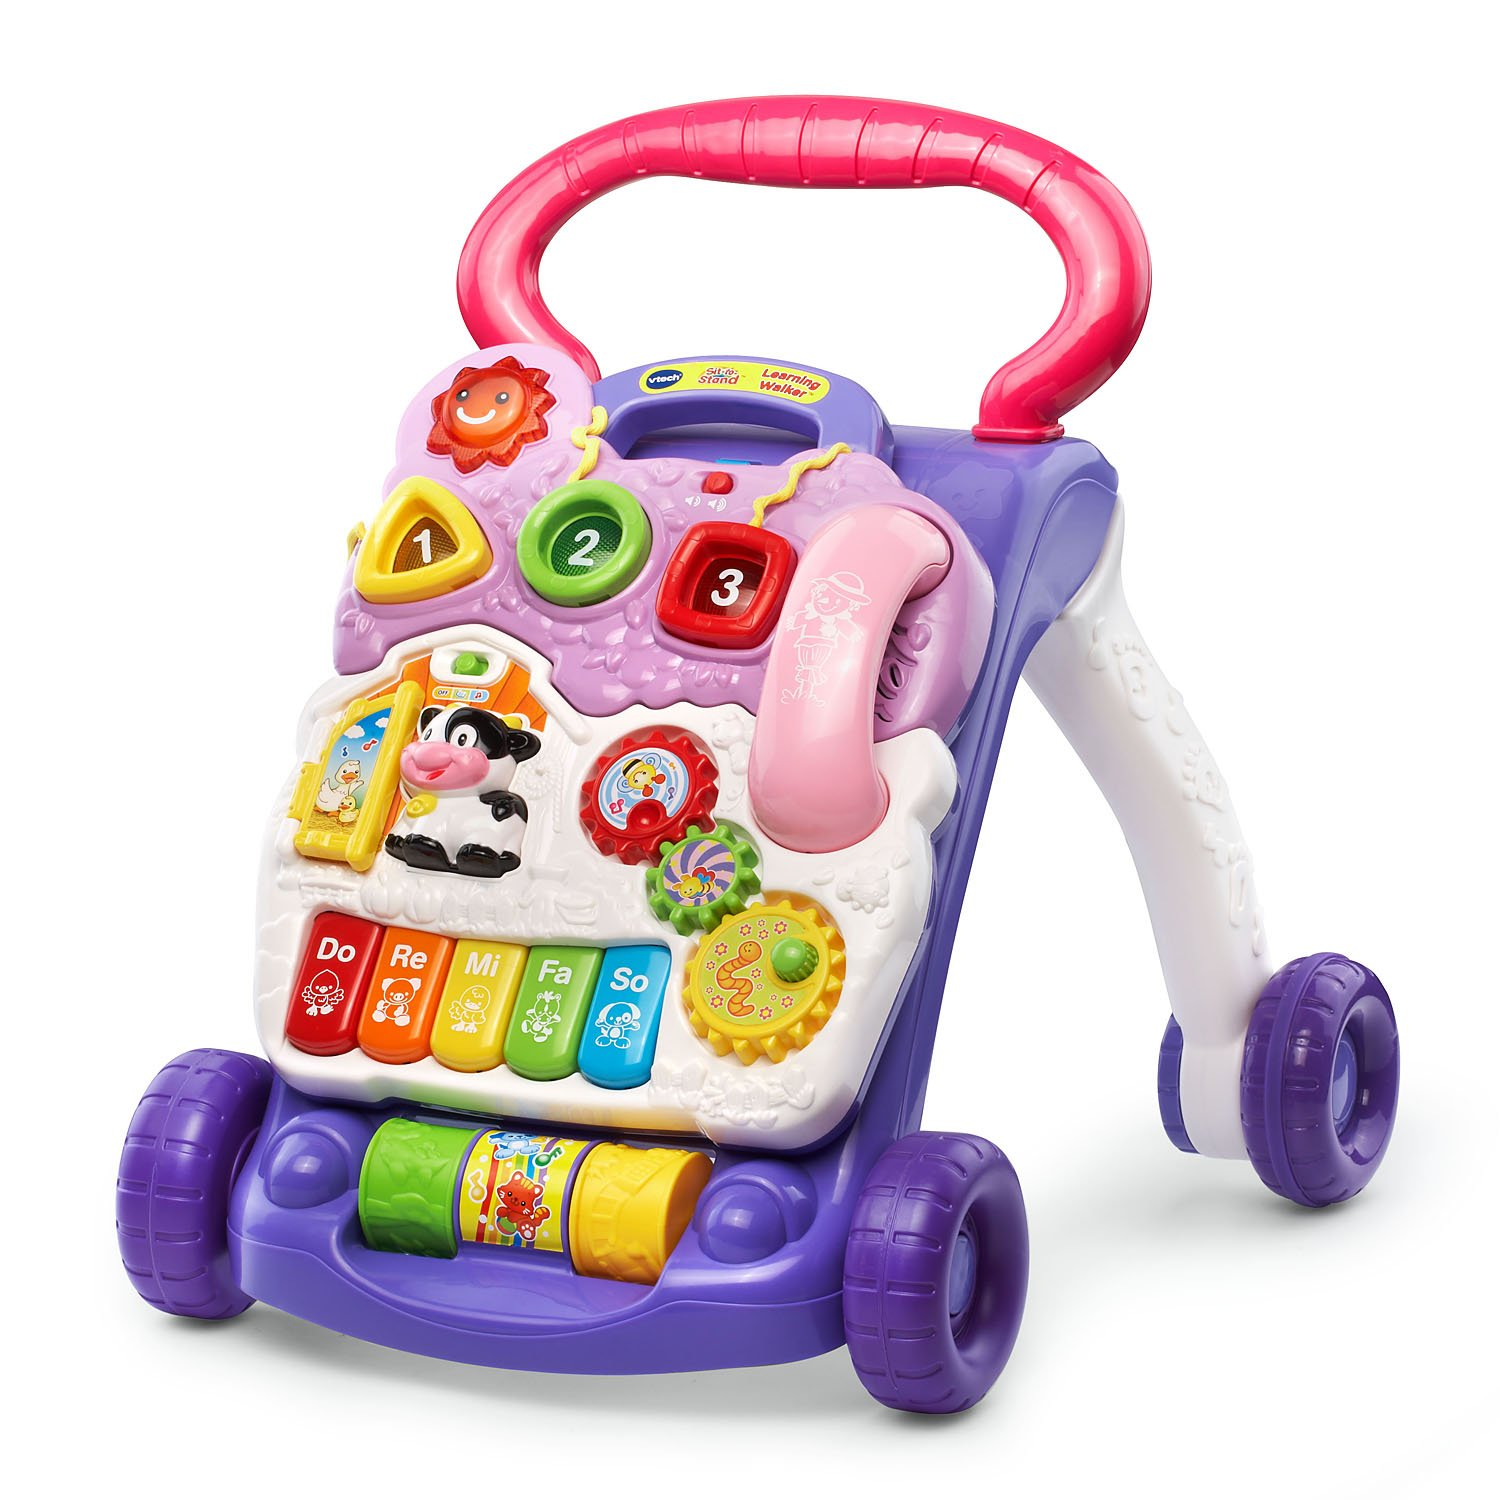 VTech Sit-to-Stand Learning Walker, Lavender - (Frustration Free Packaging) (Amazon Exclusive)